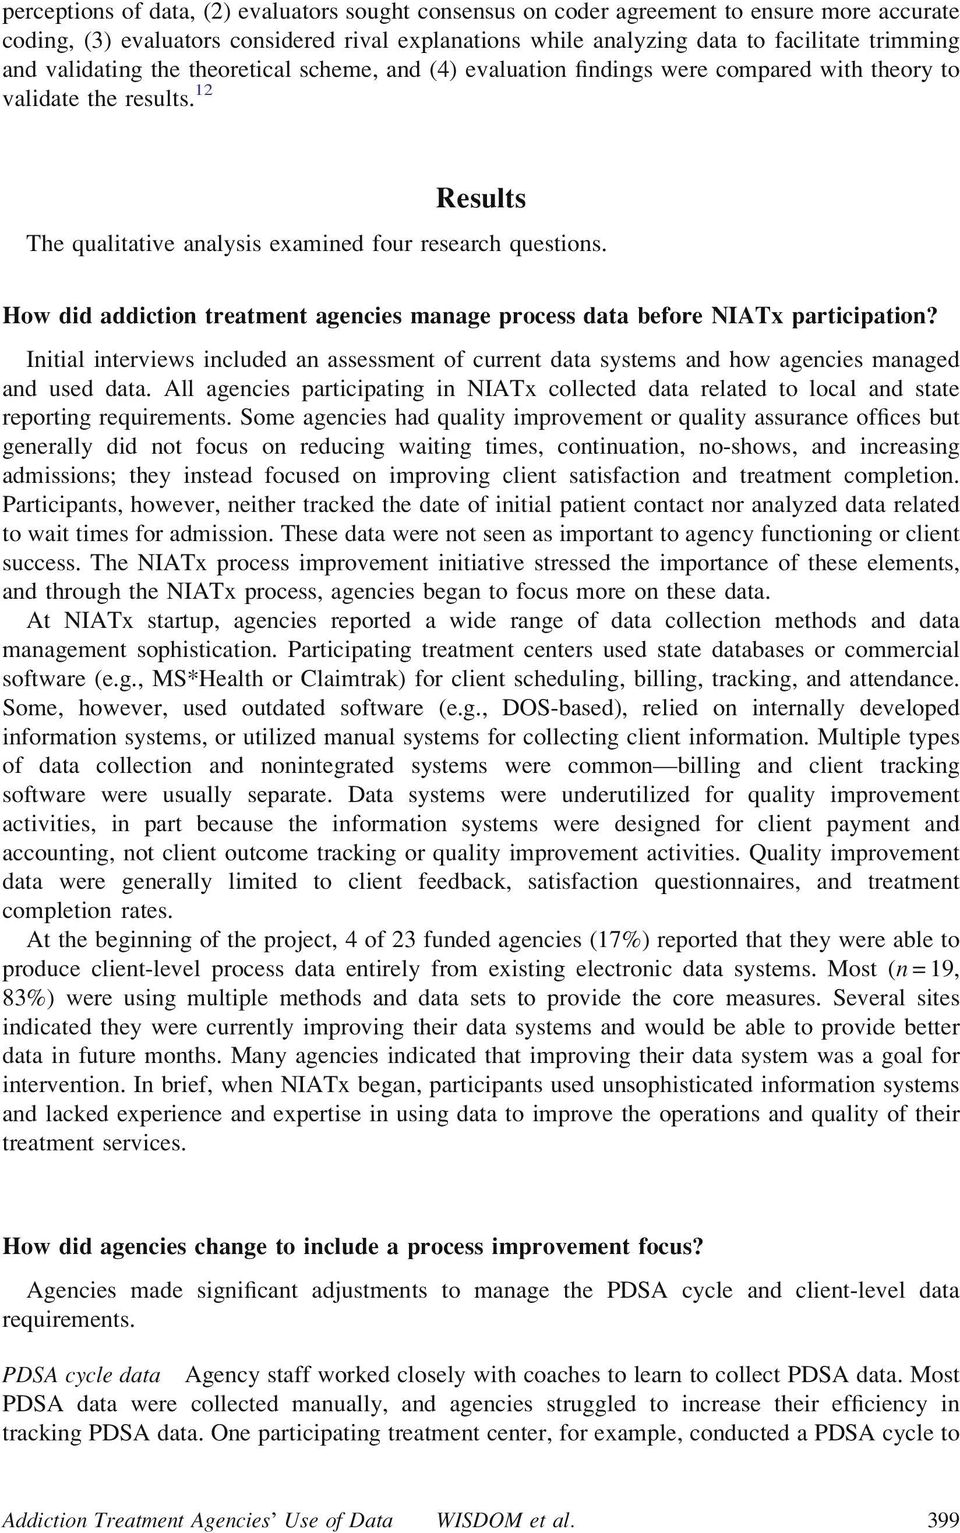 How did addiction treatment agencies manage process data before NIATx participation? Initial interviews included an assessment of current data systems and how agencies managed and used data.